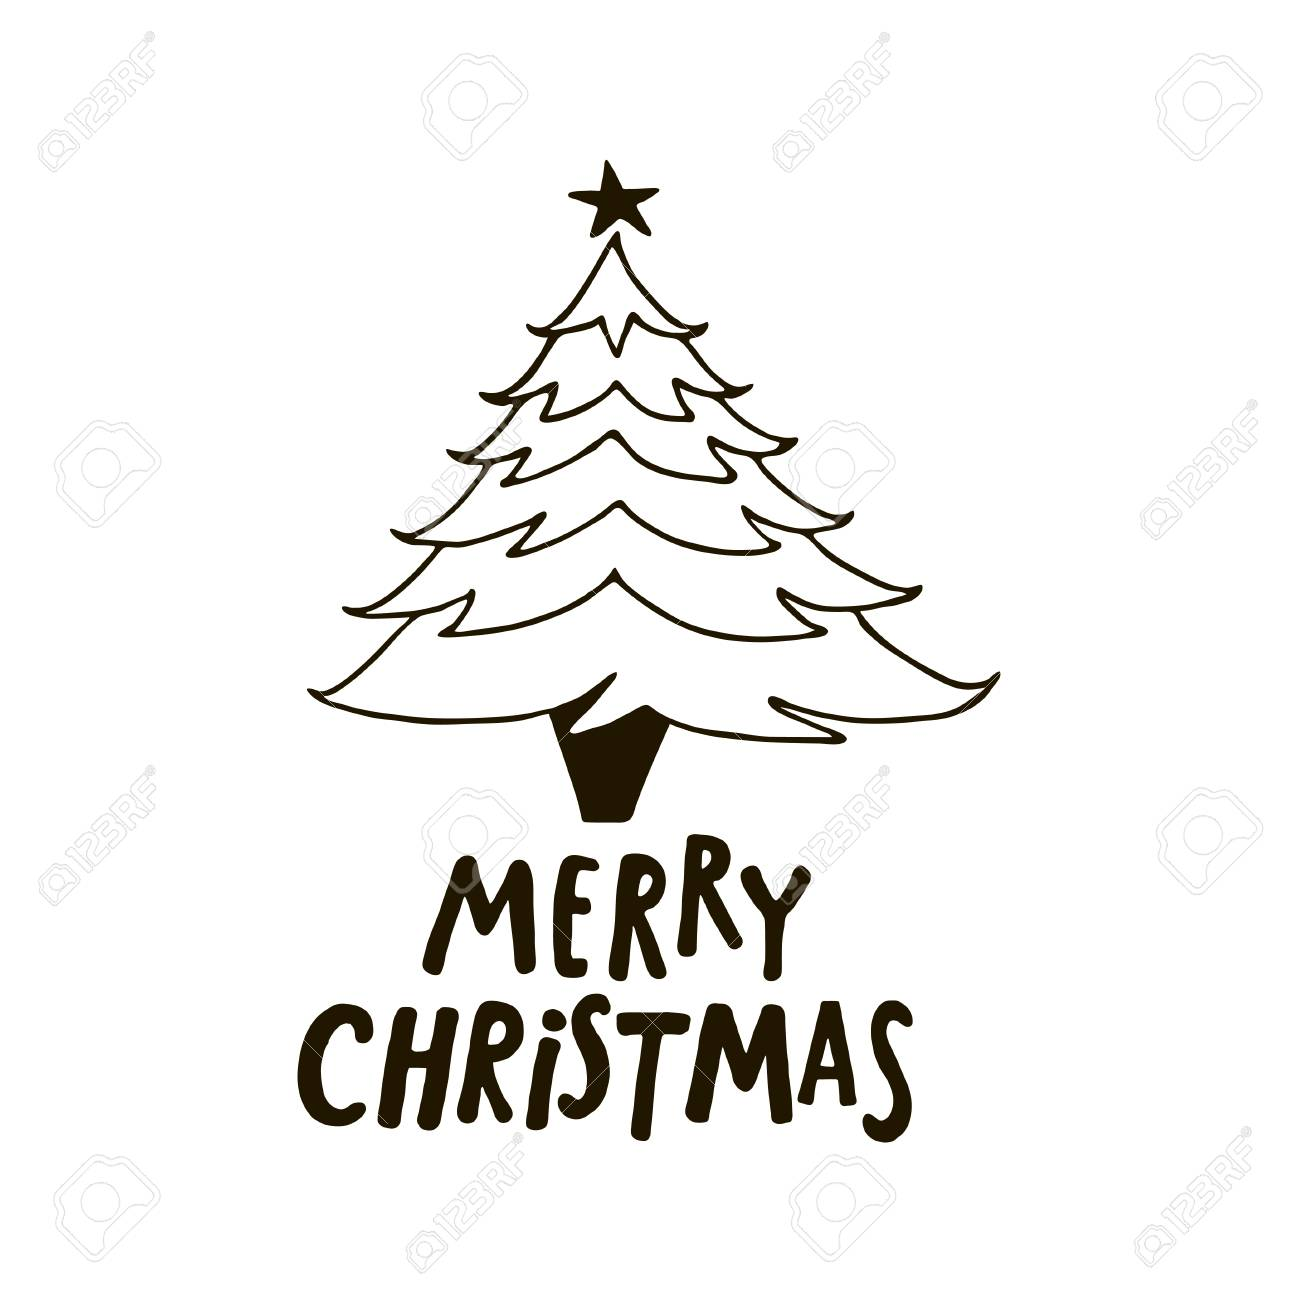 Merry Christmas Images Black And White.Merry Christmas Greeting Card With Fir Tree Black And White